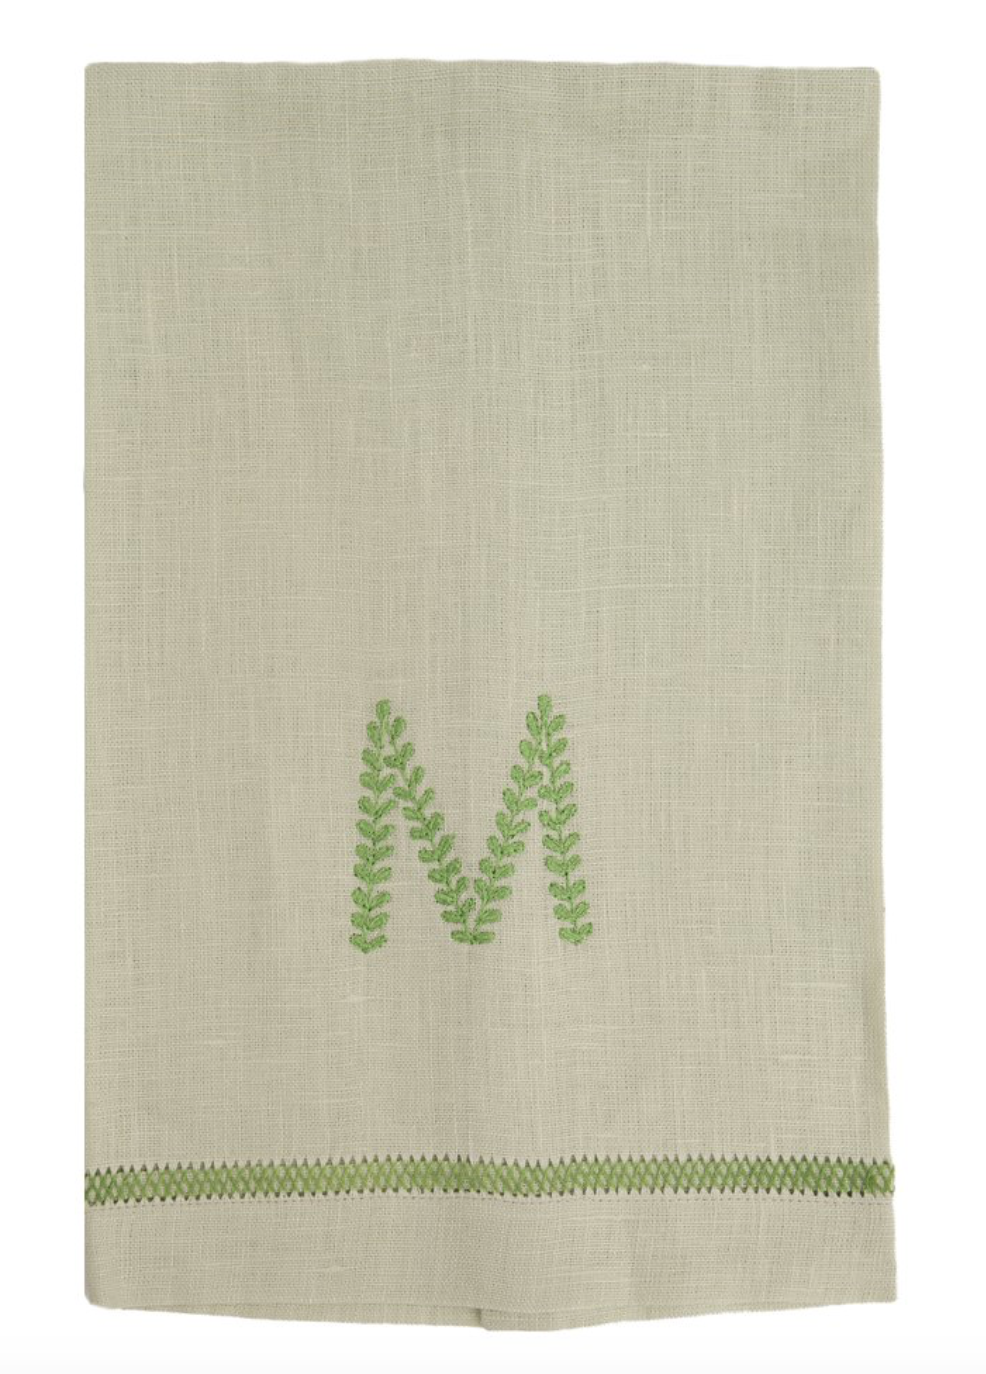 Mint Guest Towel with Ivy Monogram